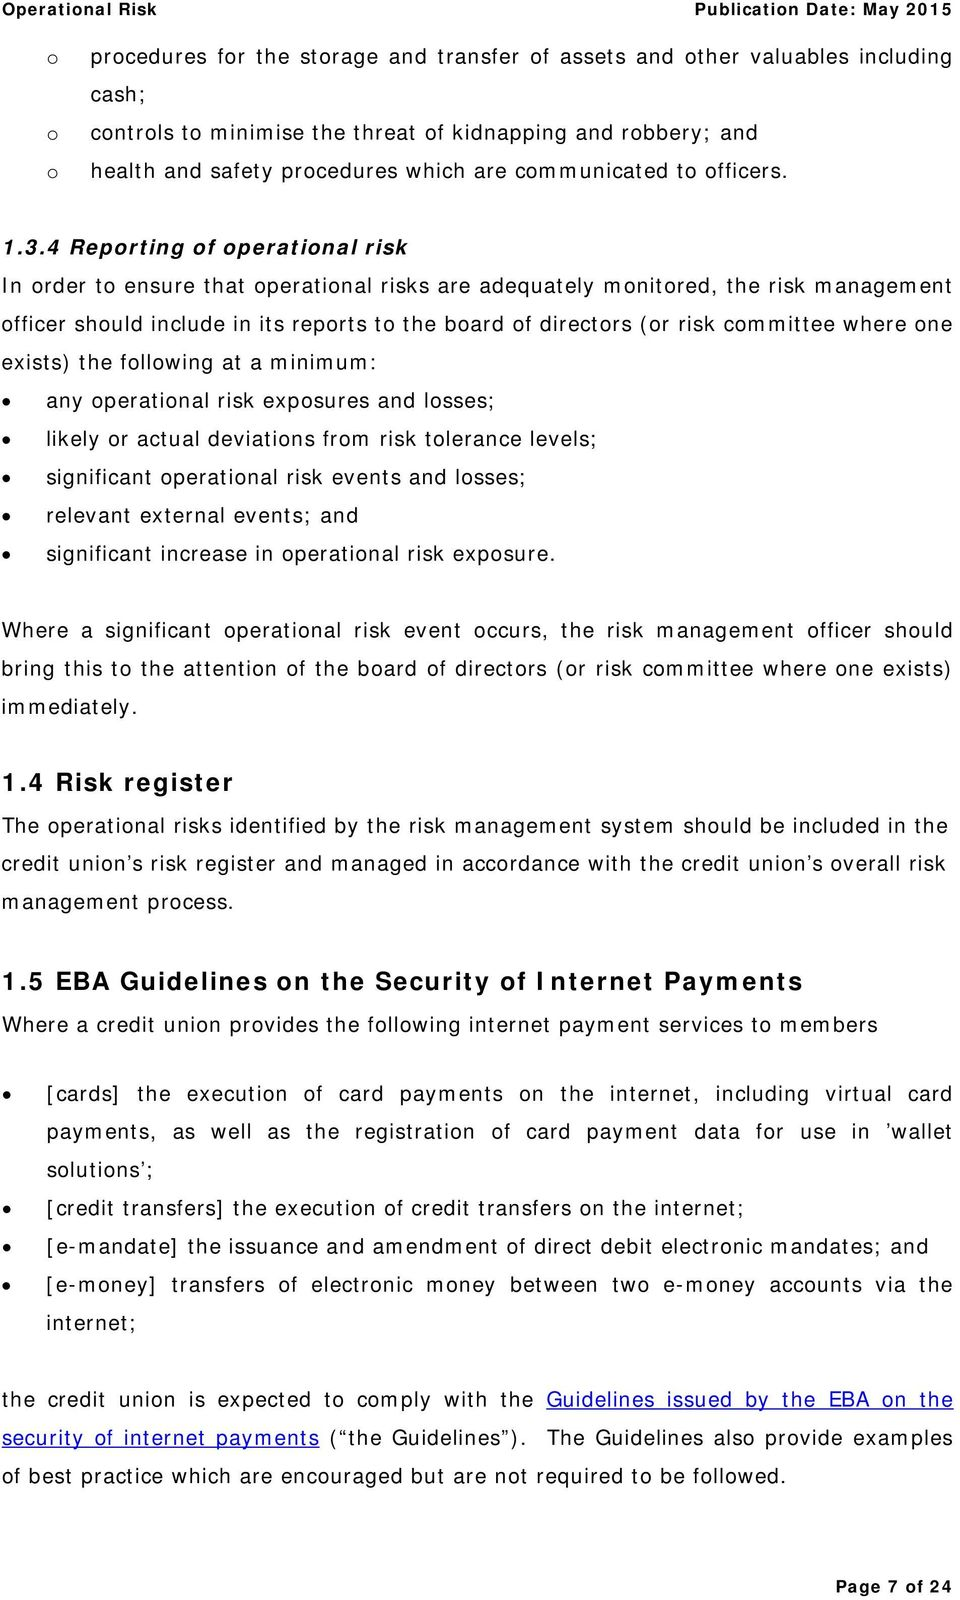 4 Reporting of operational risk In order to ensure that operational risks are adequately monitored, the risk management officer should include in its reports to the board of directors (or risk